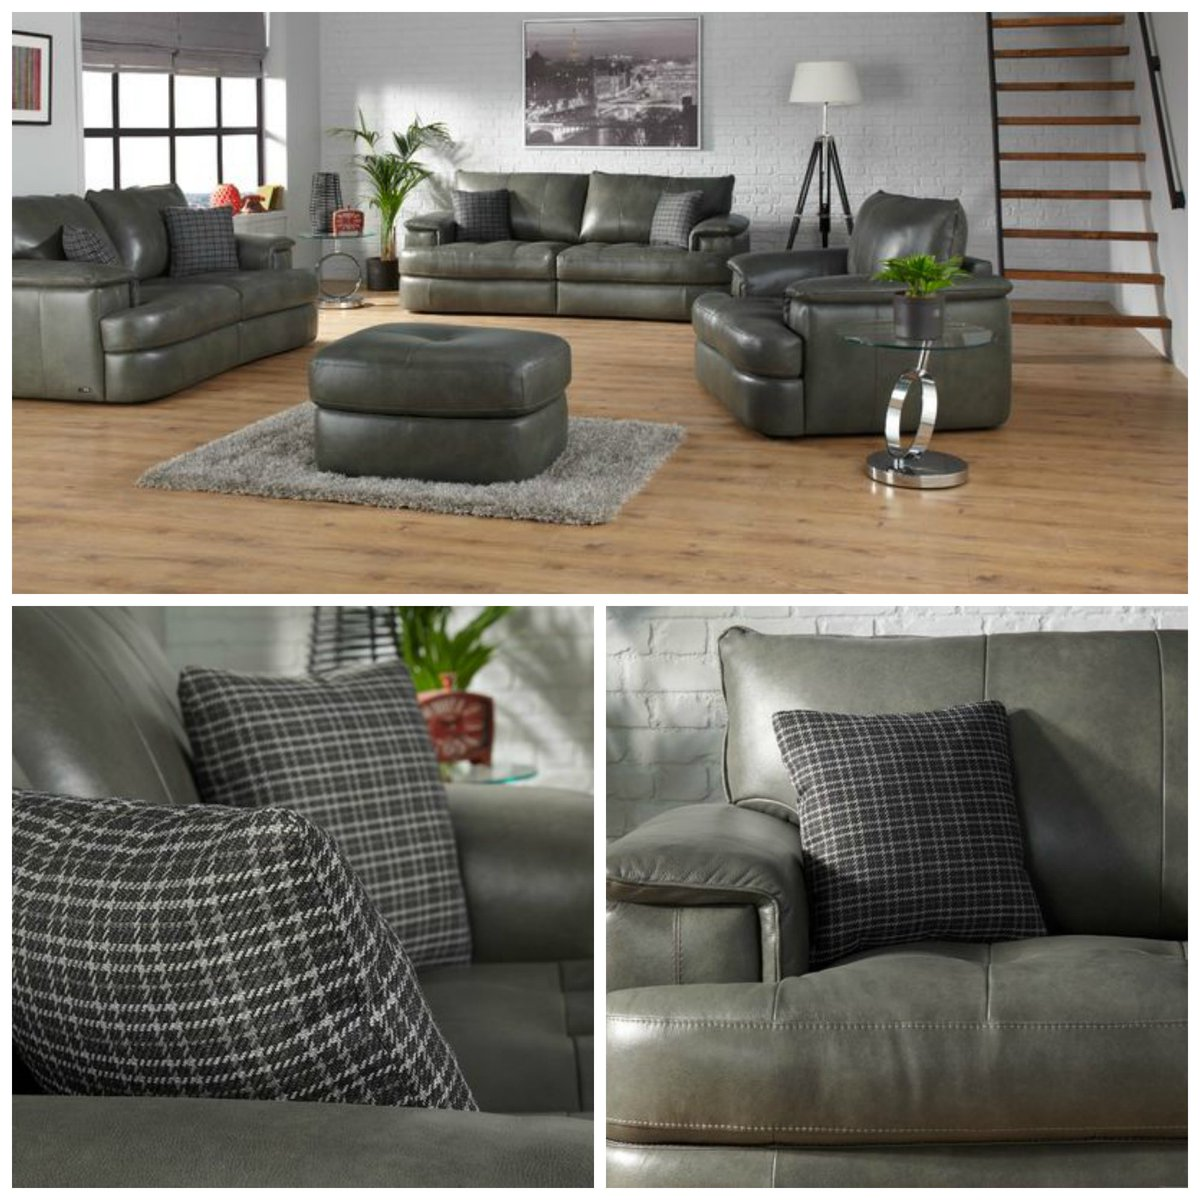 Scs Sofas On Twitter Add A Stylish Touch To Your Home With This 100 Leather Sisi Italia Alessia 3 Seater Sofa Https T Co Wxfpux7hap